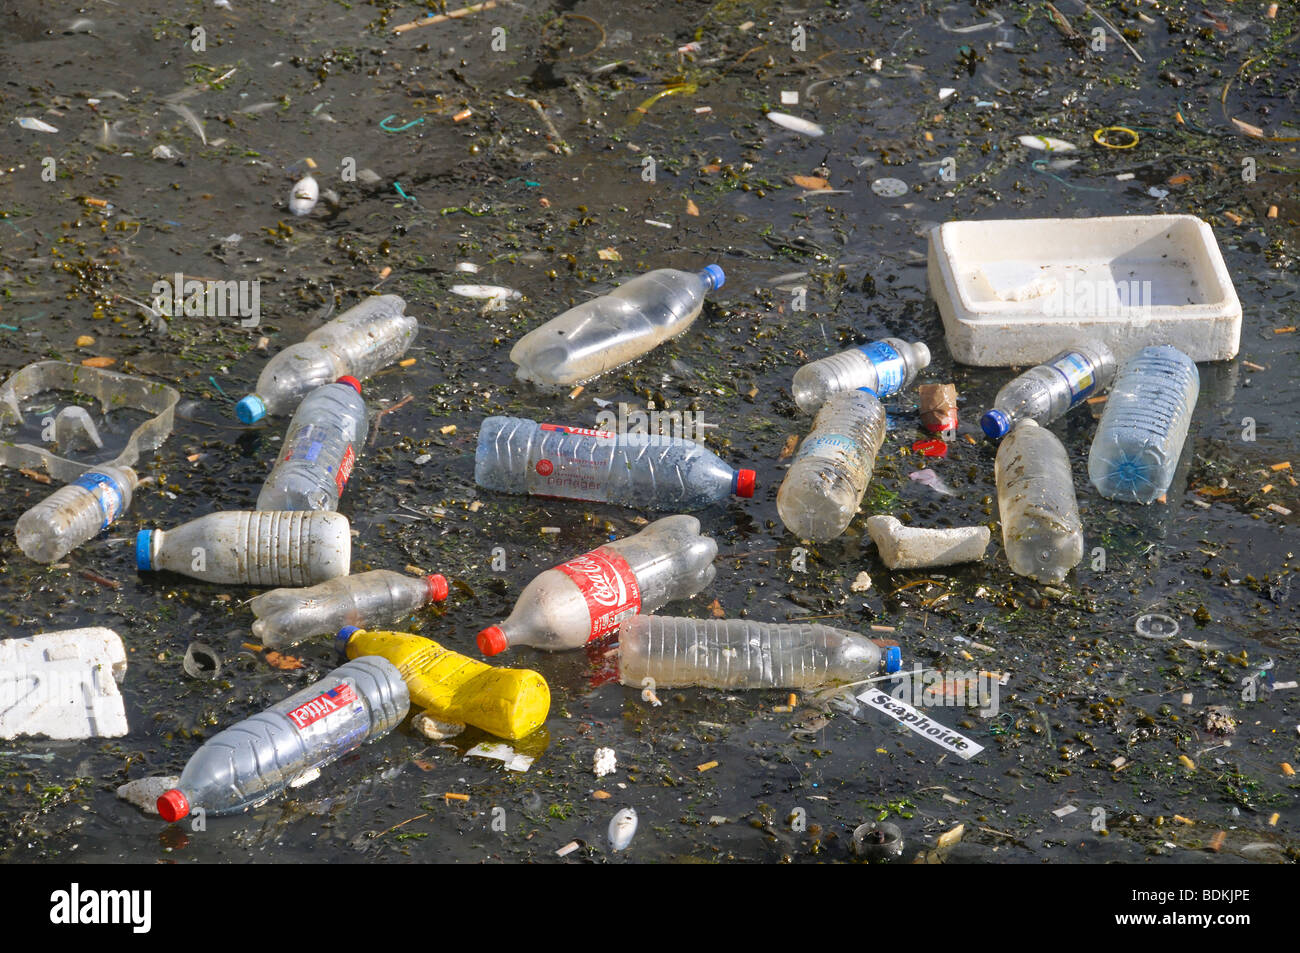 Plastic bottles, polystyrene crates and other detritus floating on water. Stock Photo